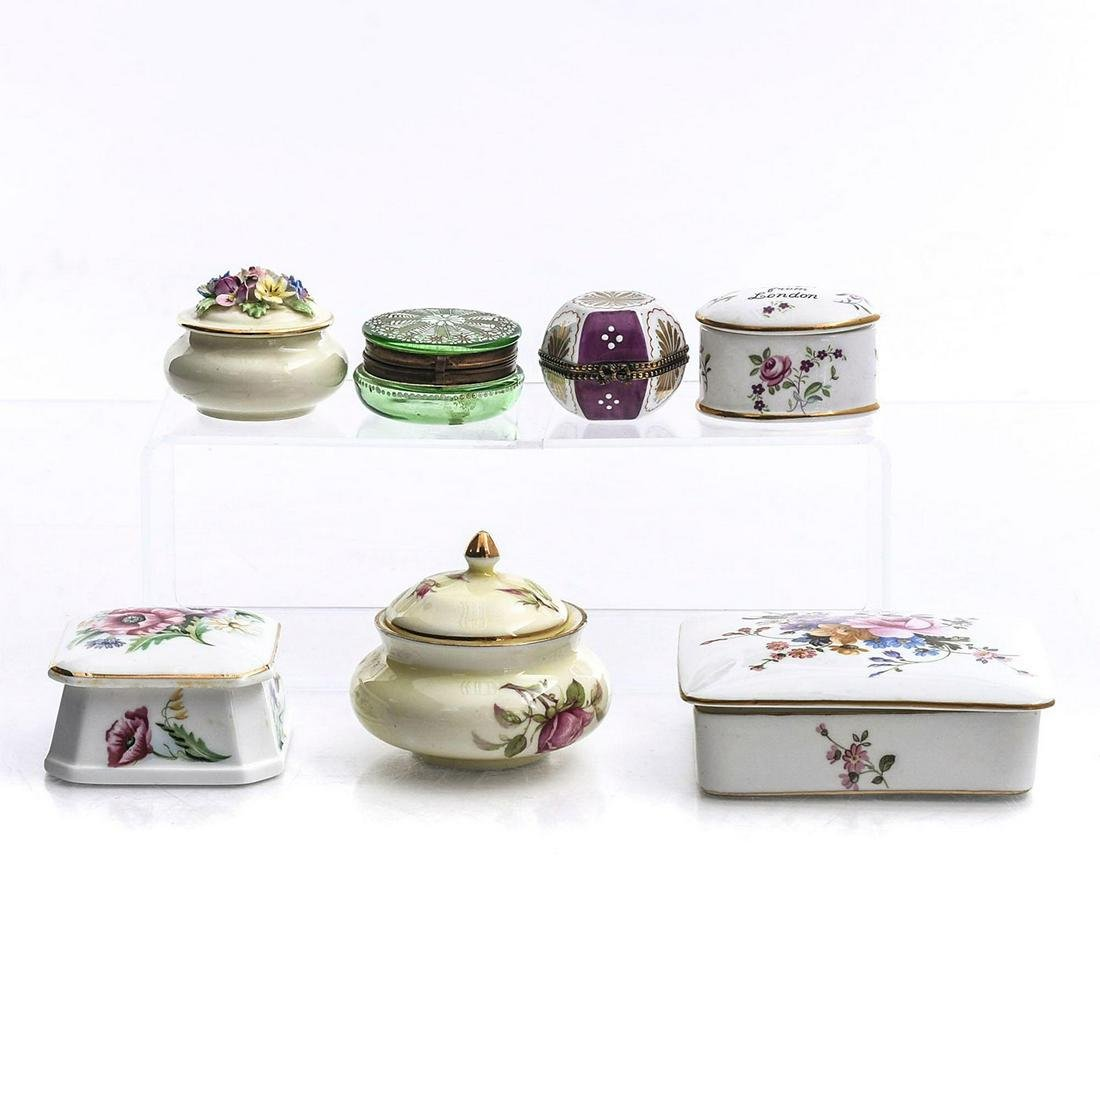 7 PORCELAIN AND GLASS TRINKET BOXES